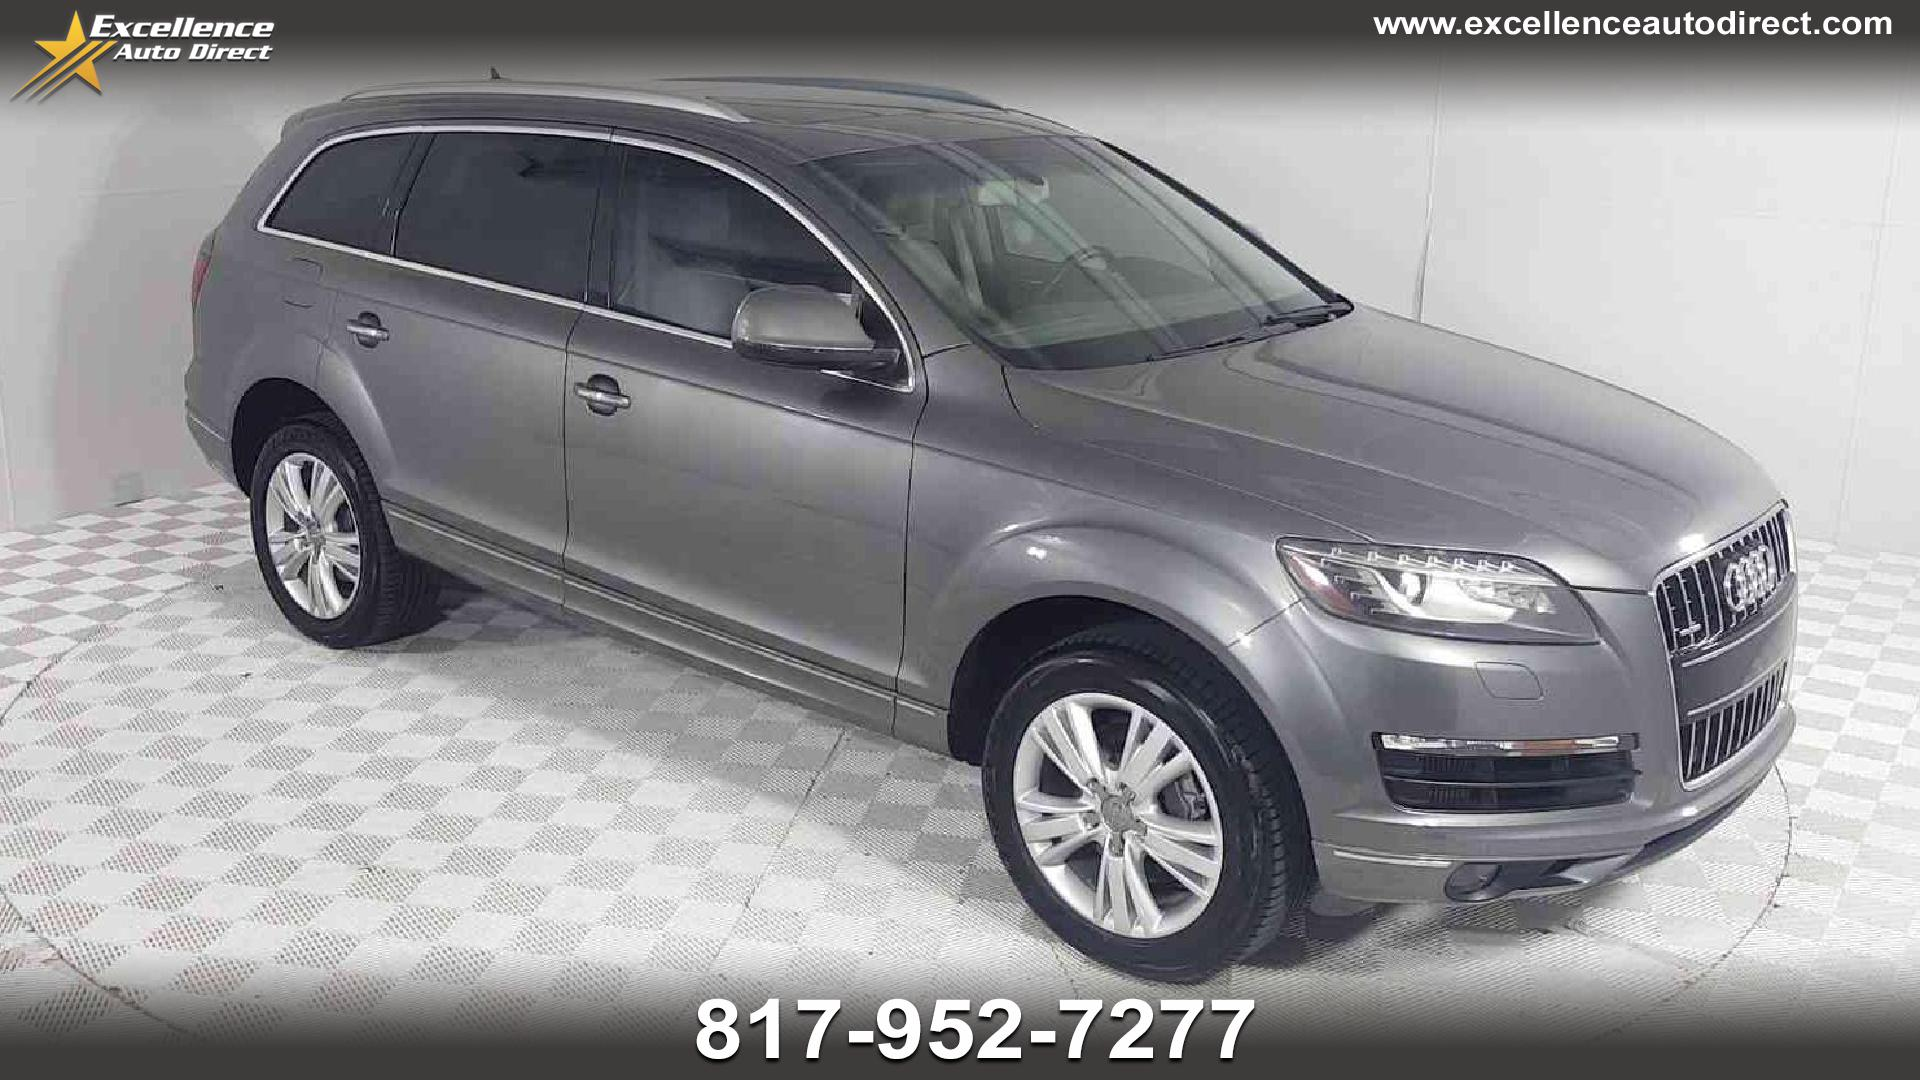 Used cars Euless Texas   Excellence Auto Direct